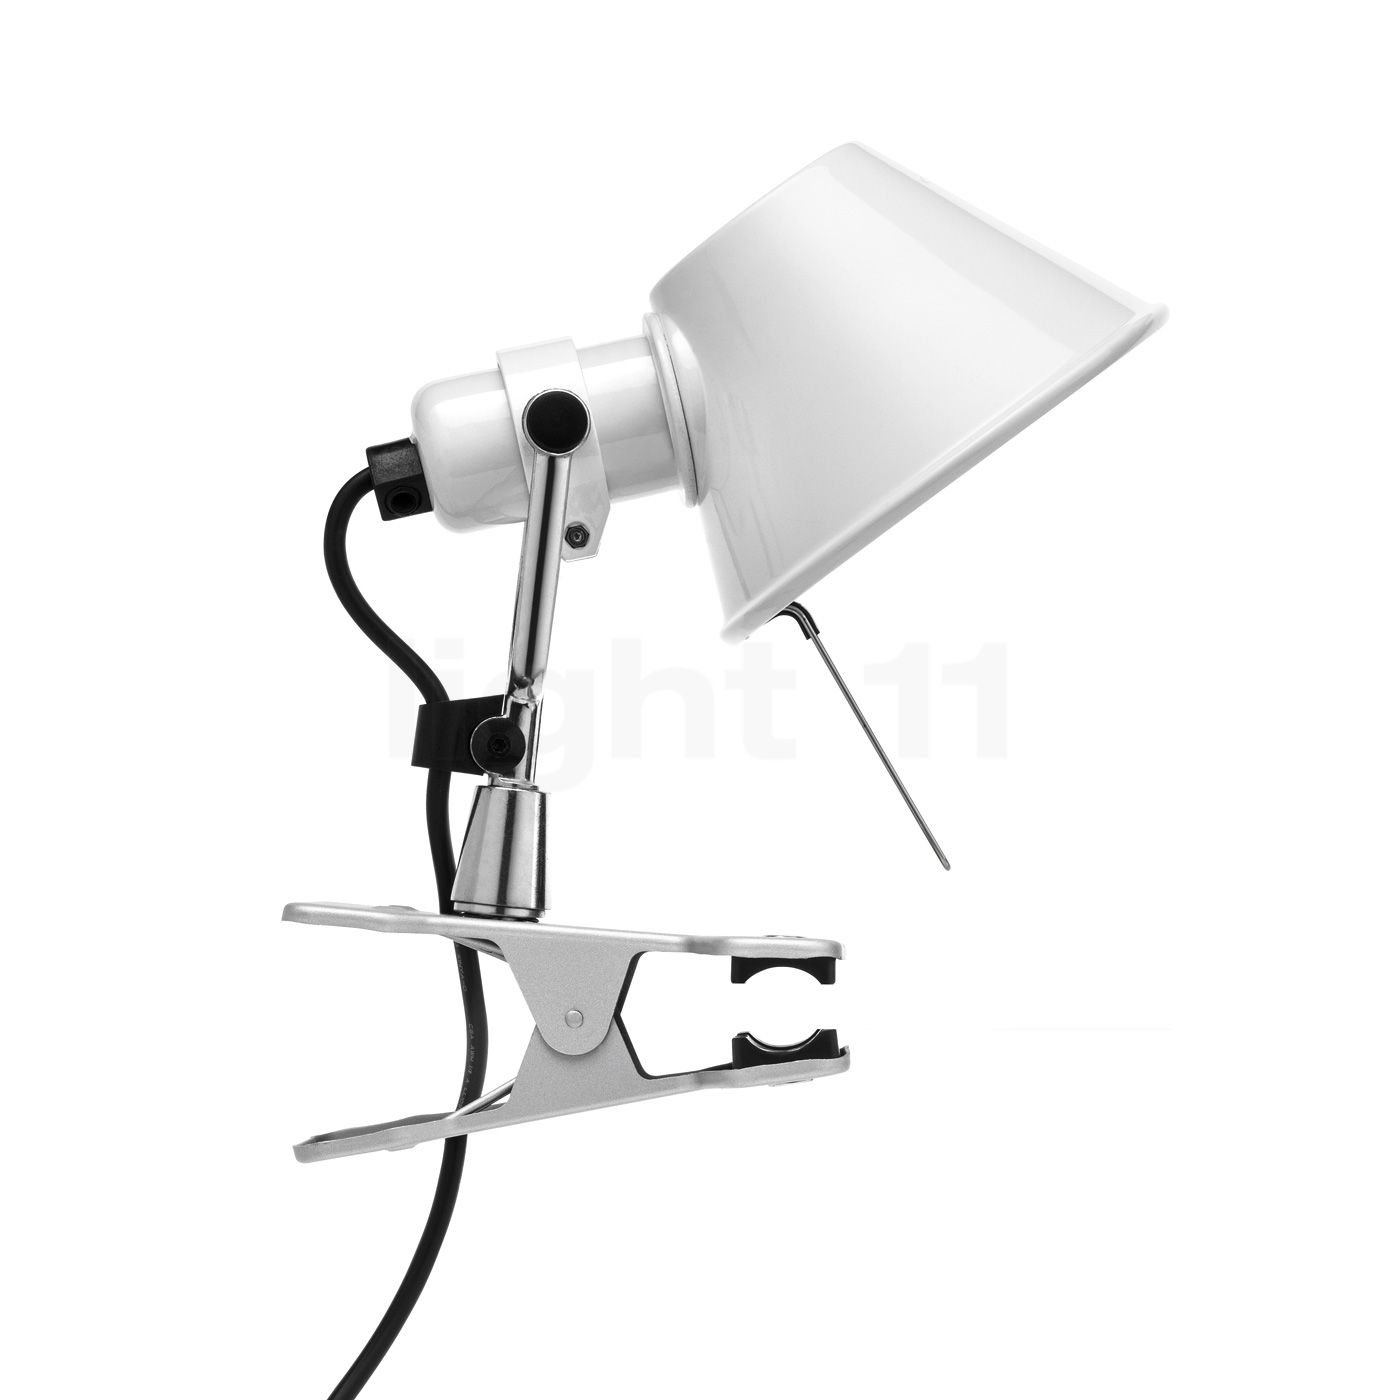 artemide tolomeo micro pinza led special edition lampada a pinza. Black Bedroom Furniture Sets. Home Design Ideas